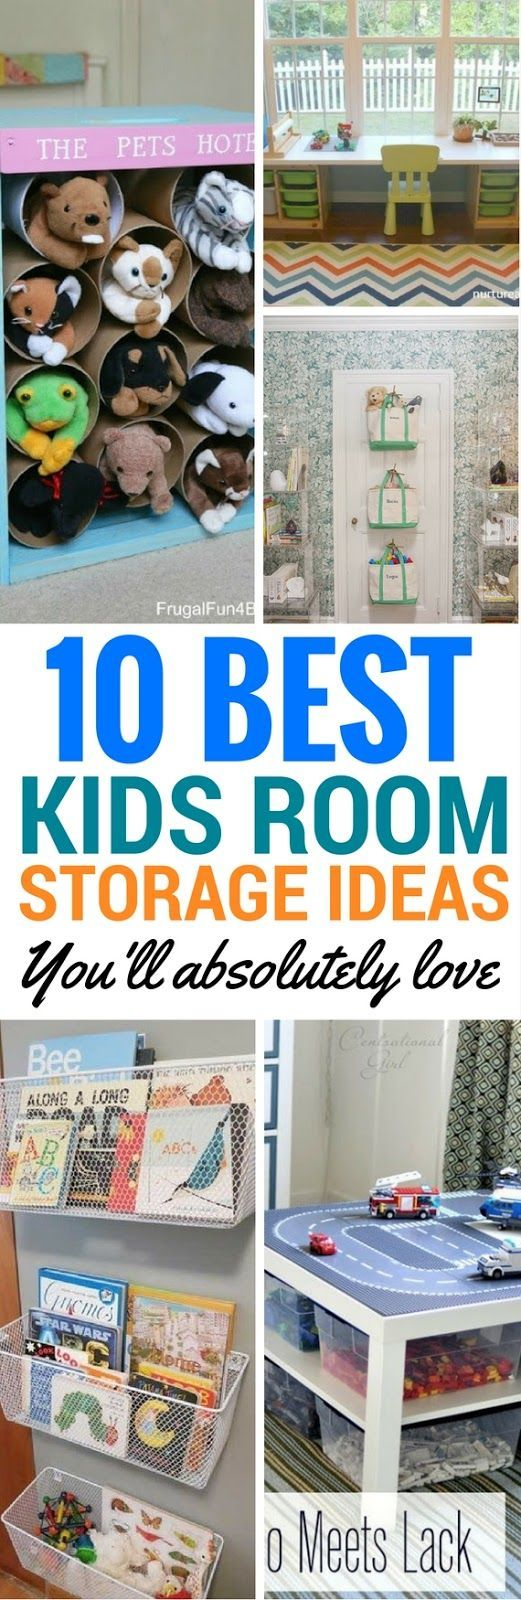 Make your dorm room a home away from home with these fun diy - Best 25 Diy Room Organization Ideas On Pinterest Room Organization Diy Organization And Diy Room Ideas